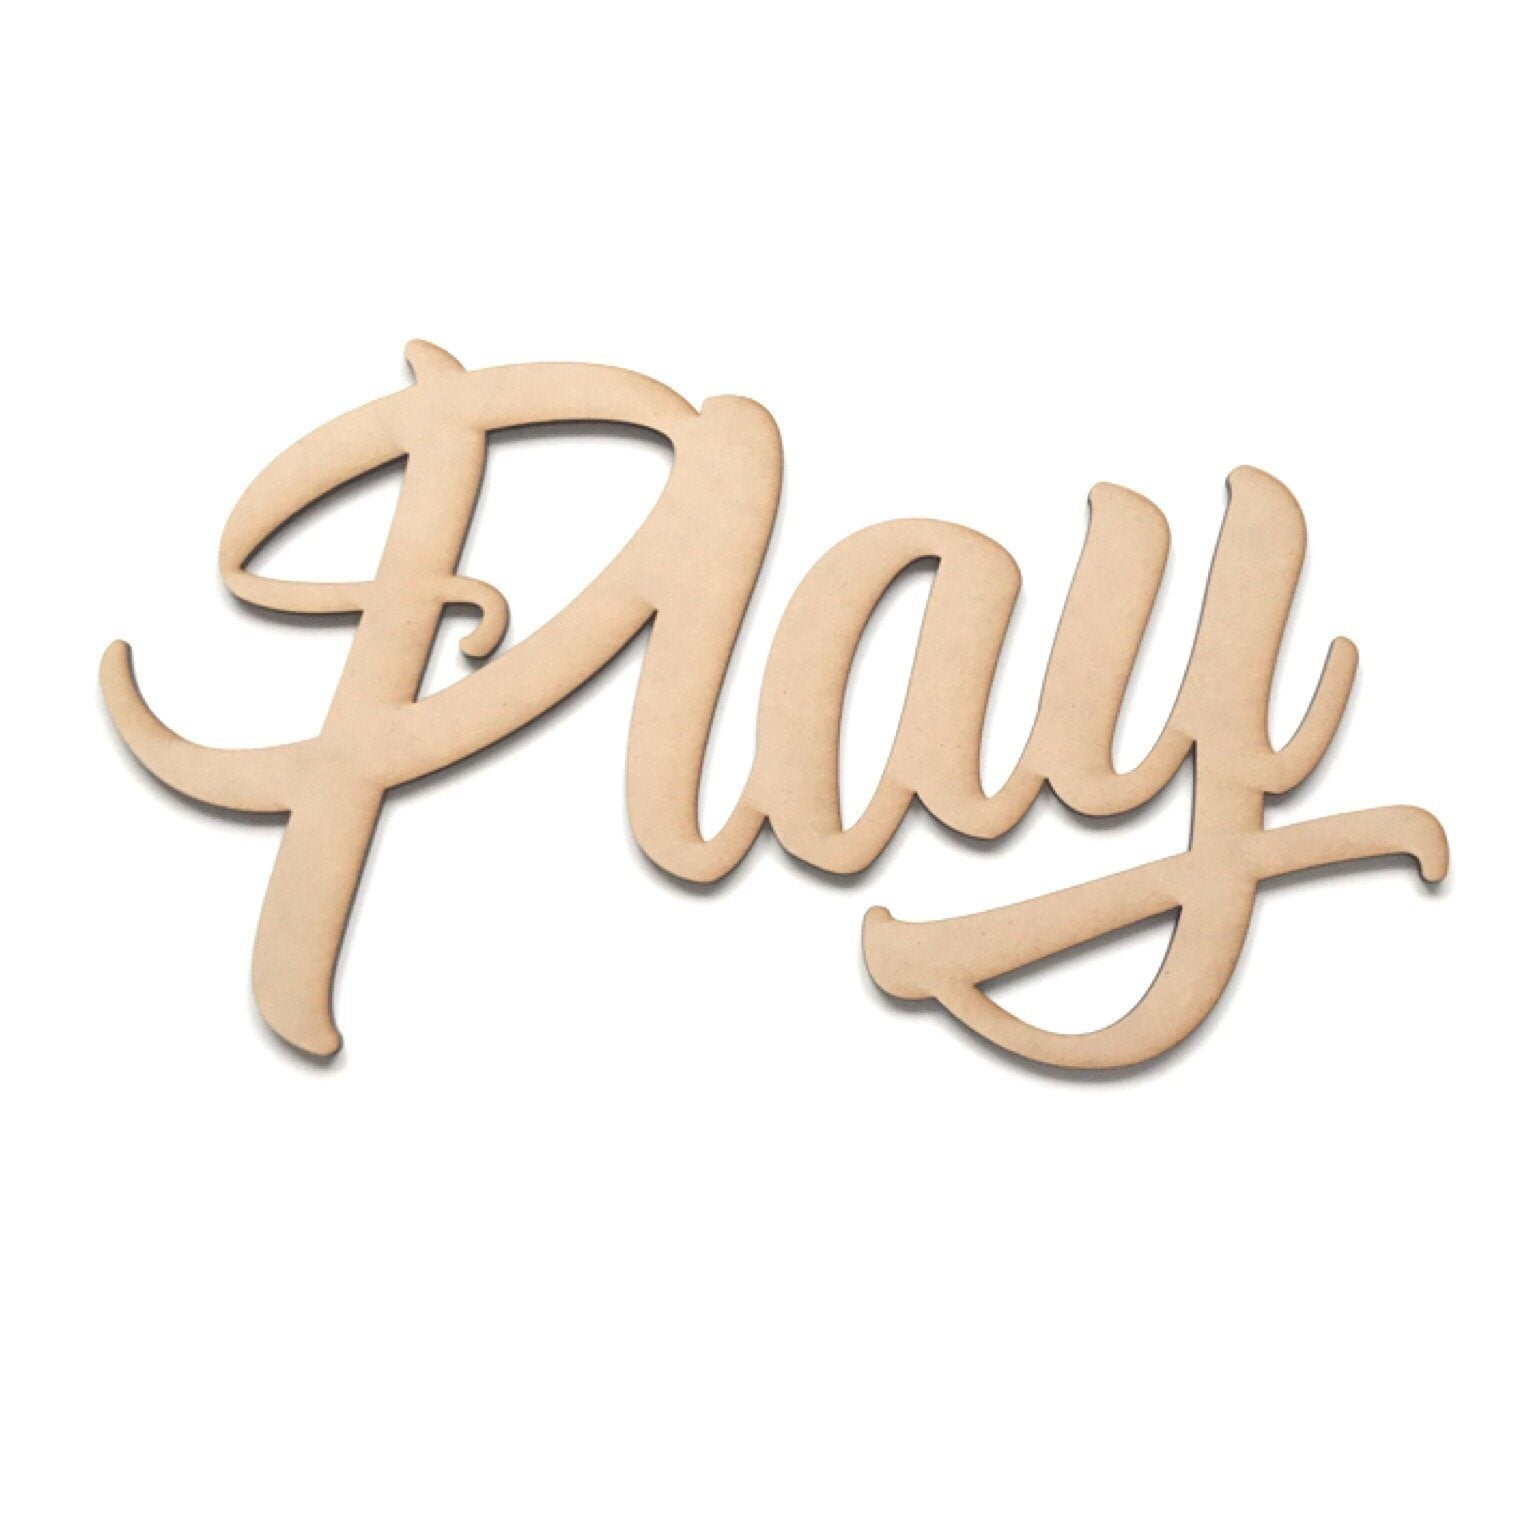 Play Word Wall Quote Art DIY Raw MDF Timber Wood Kids Children - The Renmy Store